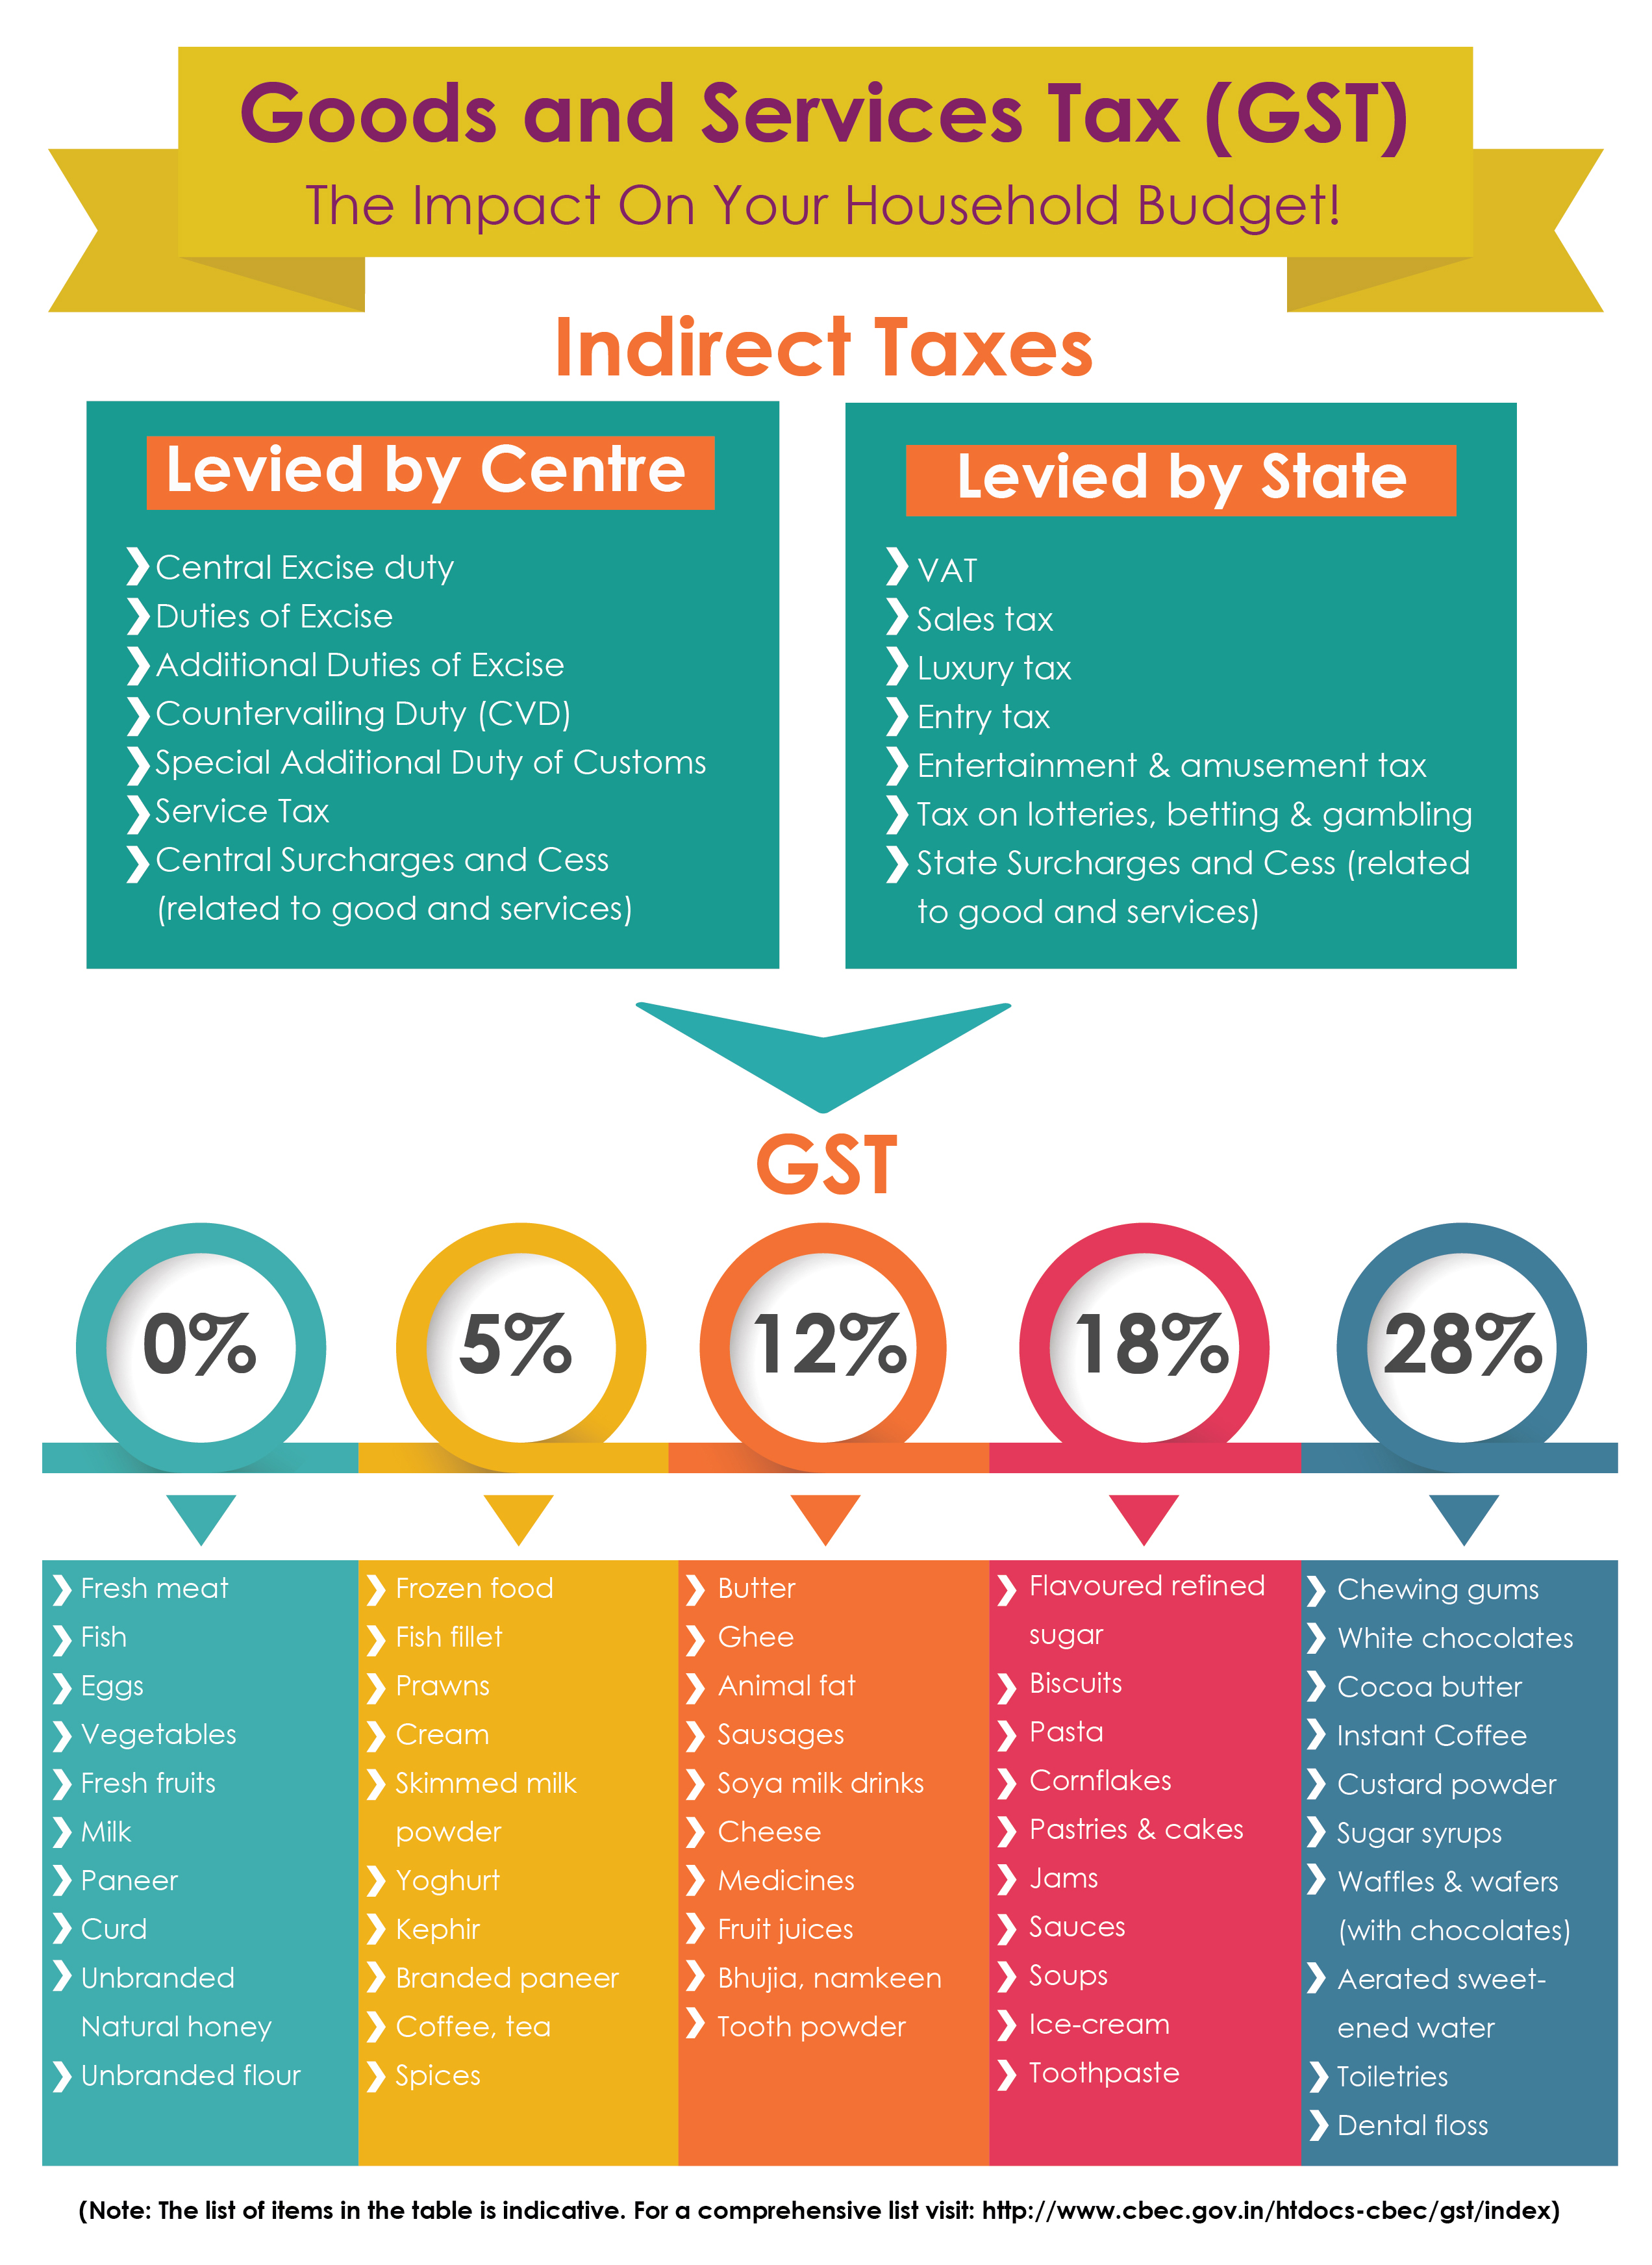 Axis Bank - GST - The Impact on your household budget